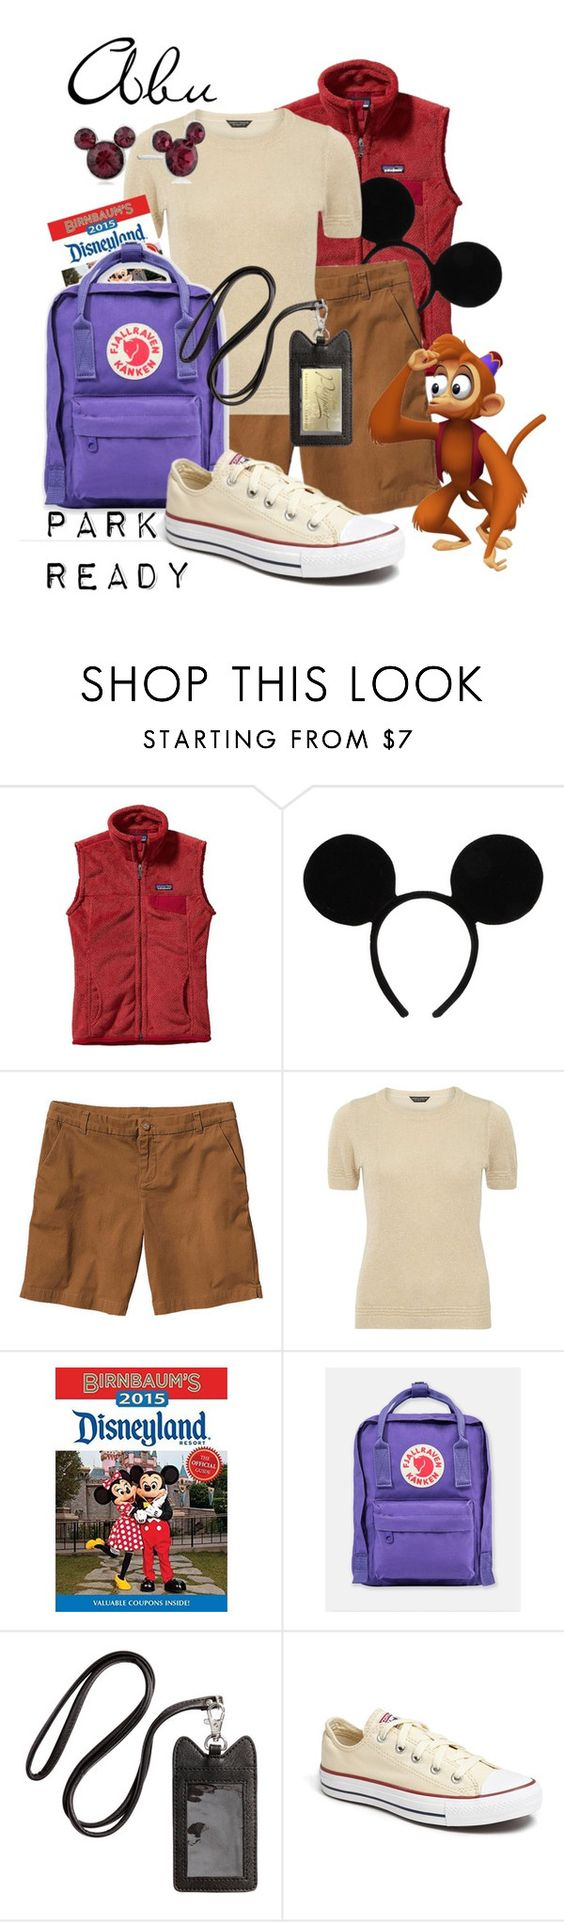 """""""Abu: Park Ready"""" by laniocracy on Polyvore featuring Patagonia, Disney, Dorothy Perkins, Fjällräven, H&M, Converse and disneyland"""